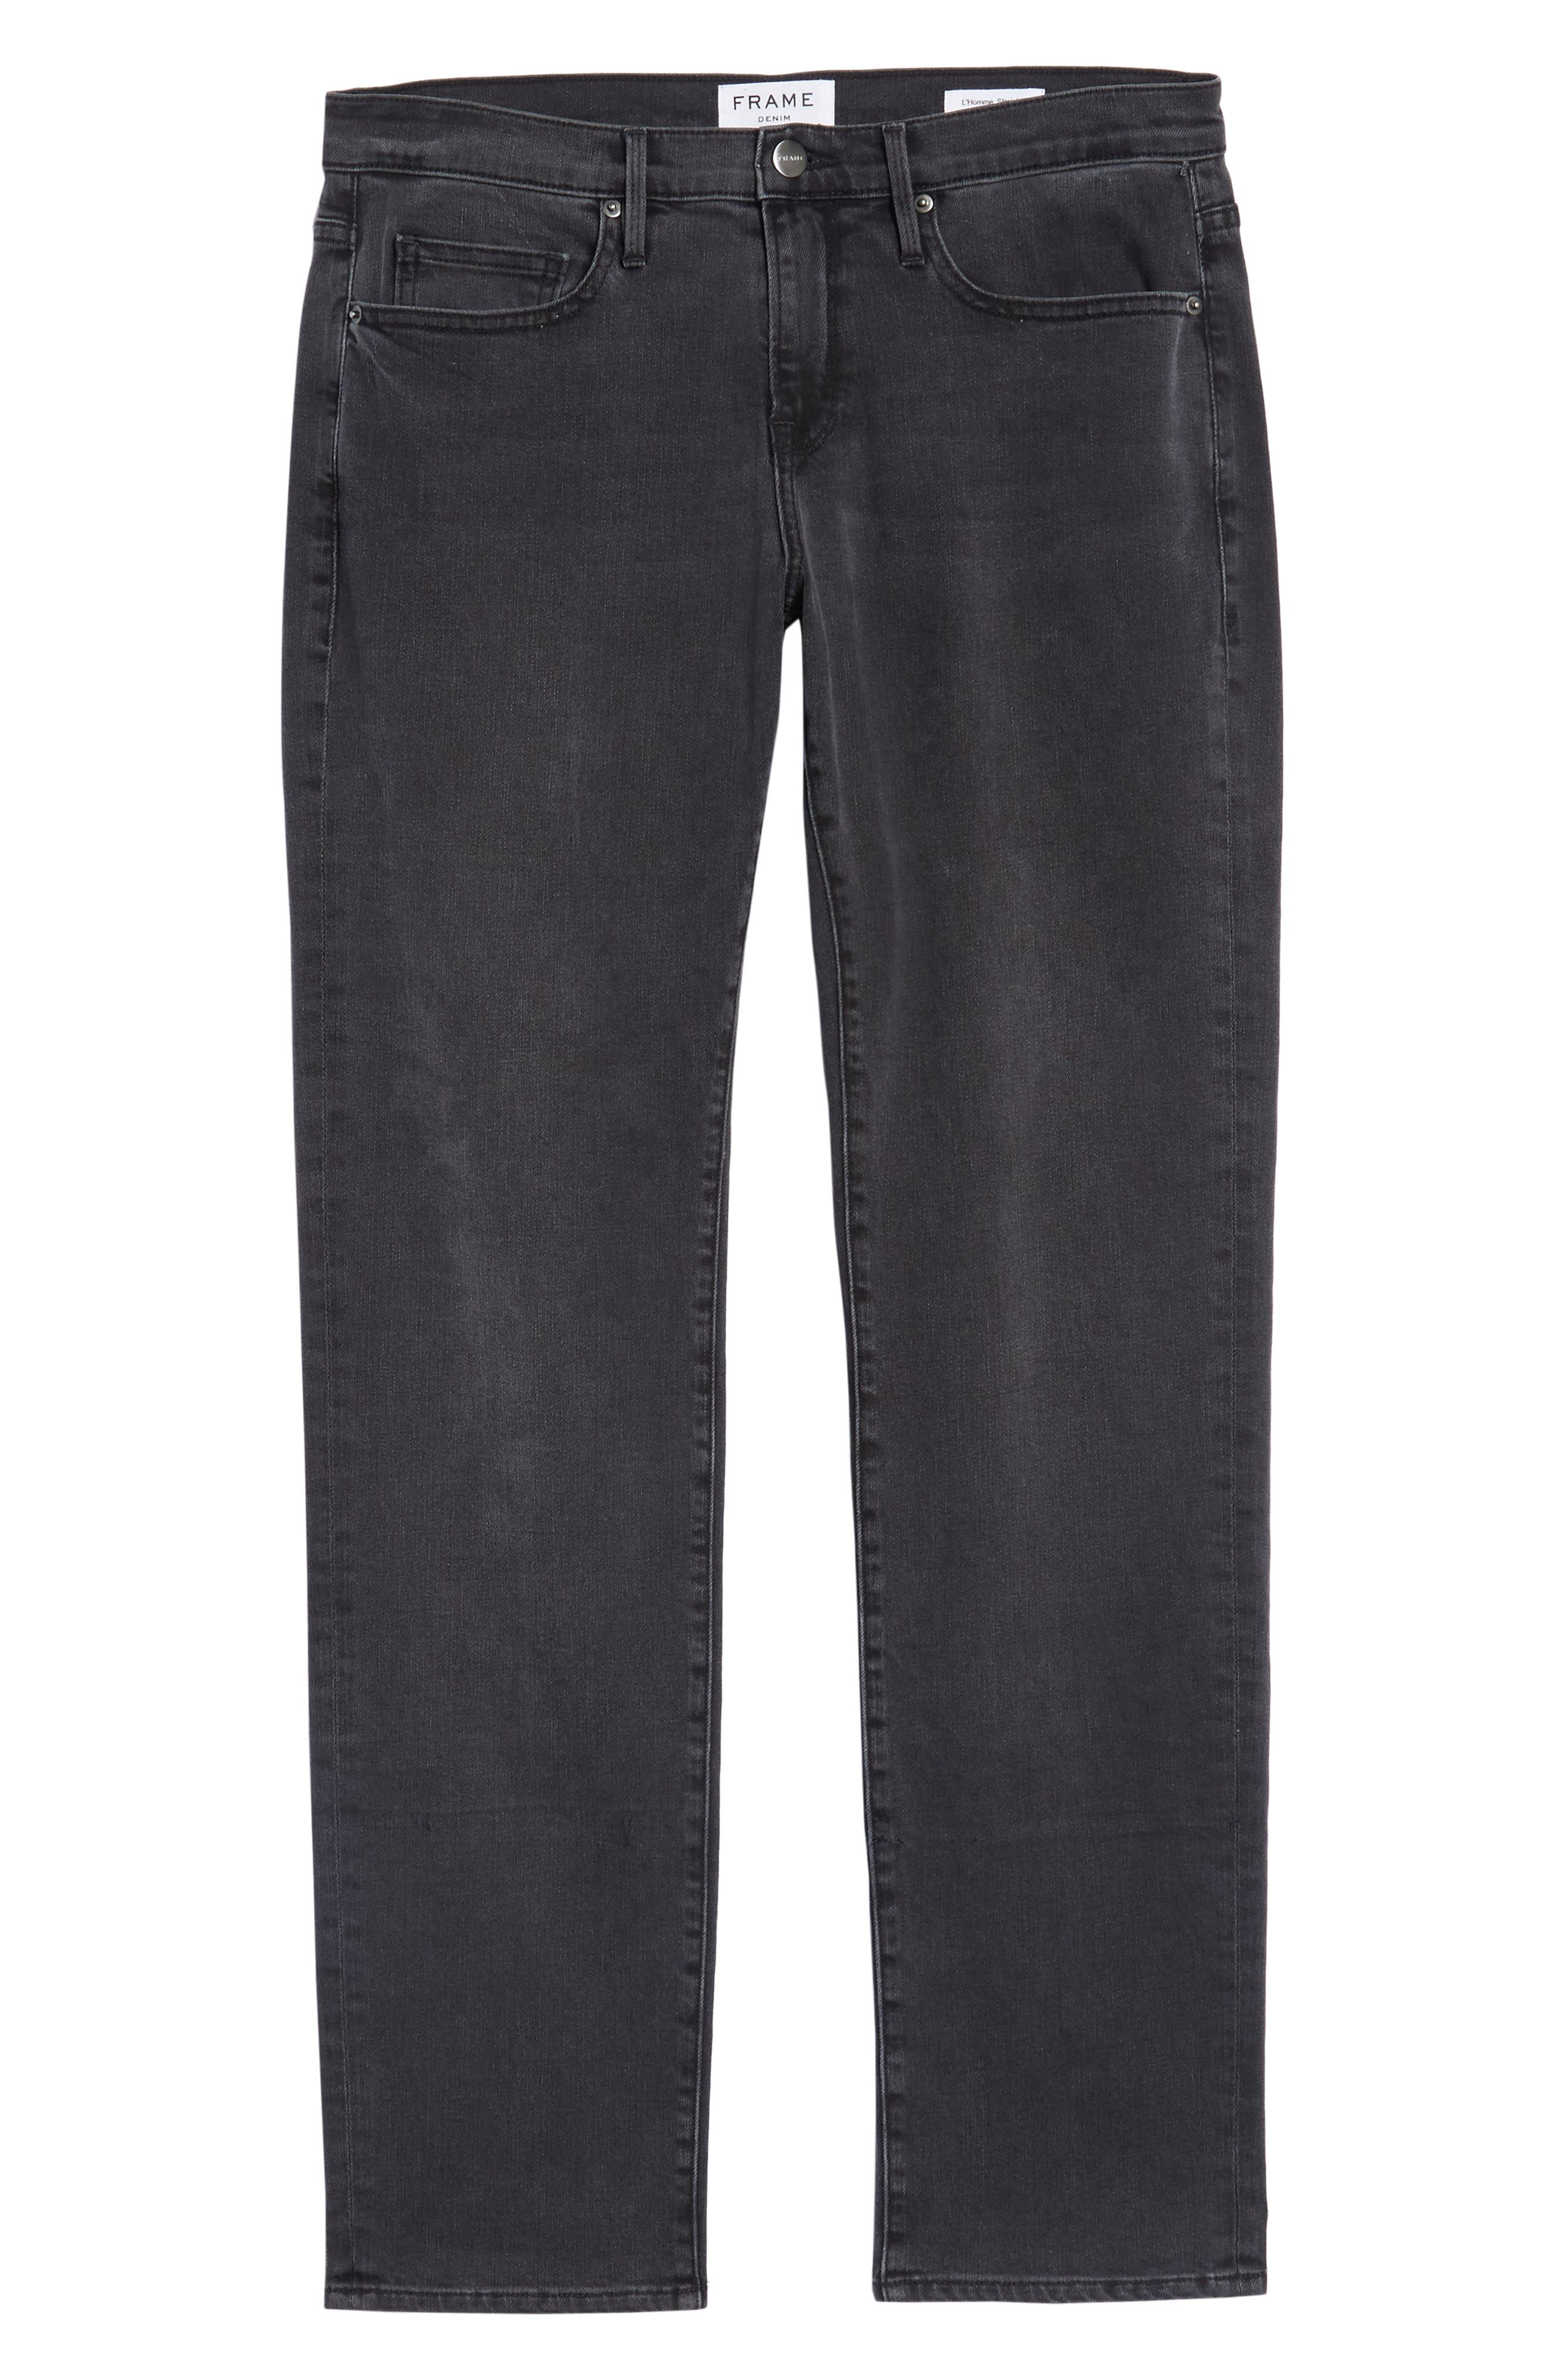 L'Homme Straight Leg Jeans,                             Alternate thumbnail 6, color,                             FADE TO GREY